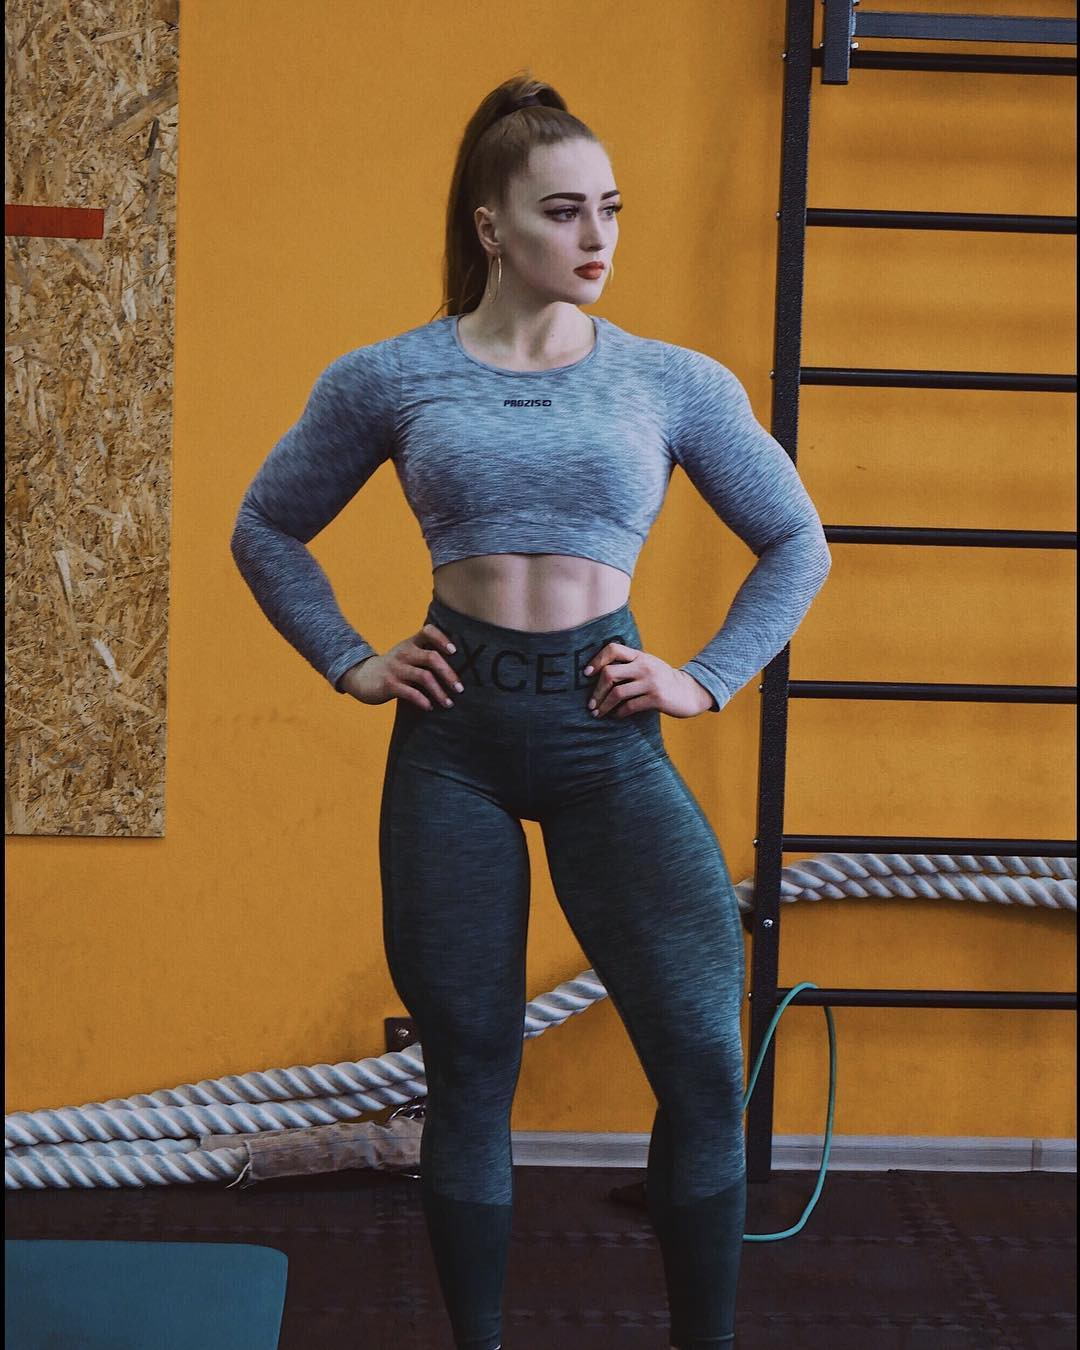 Out of the world ideas for julia vins, Fit Women